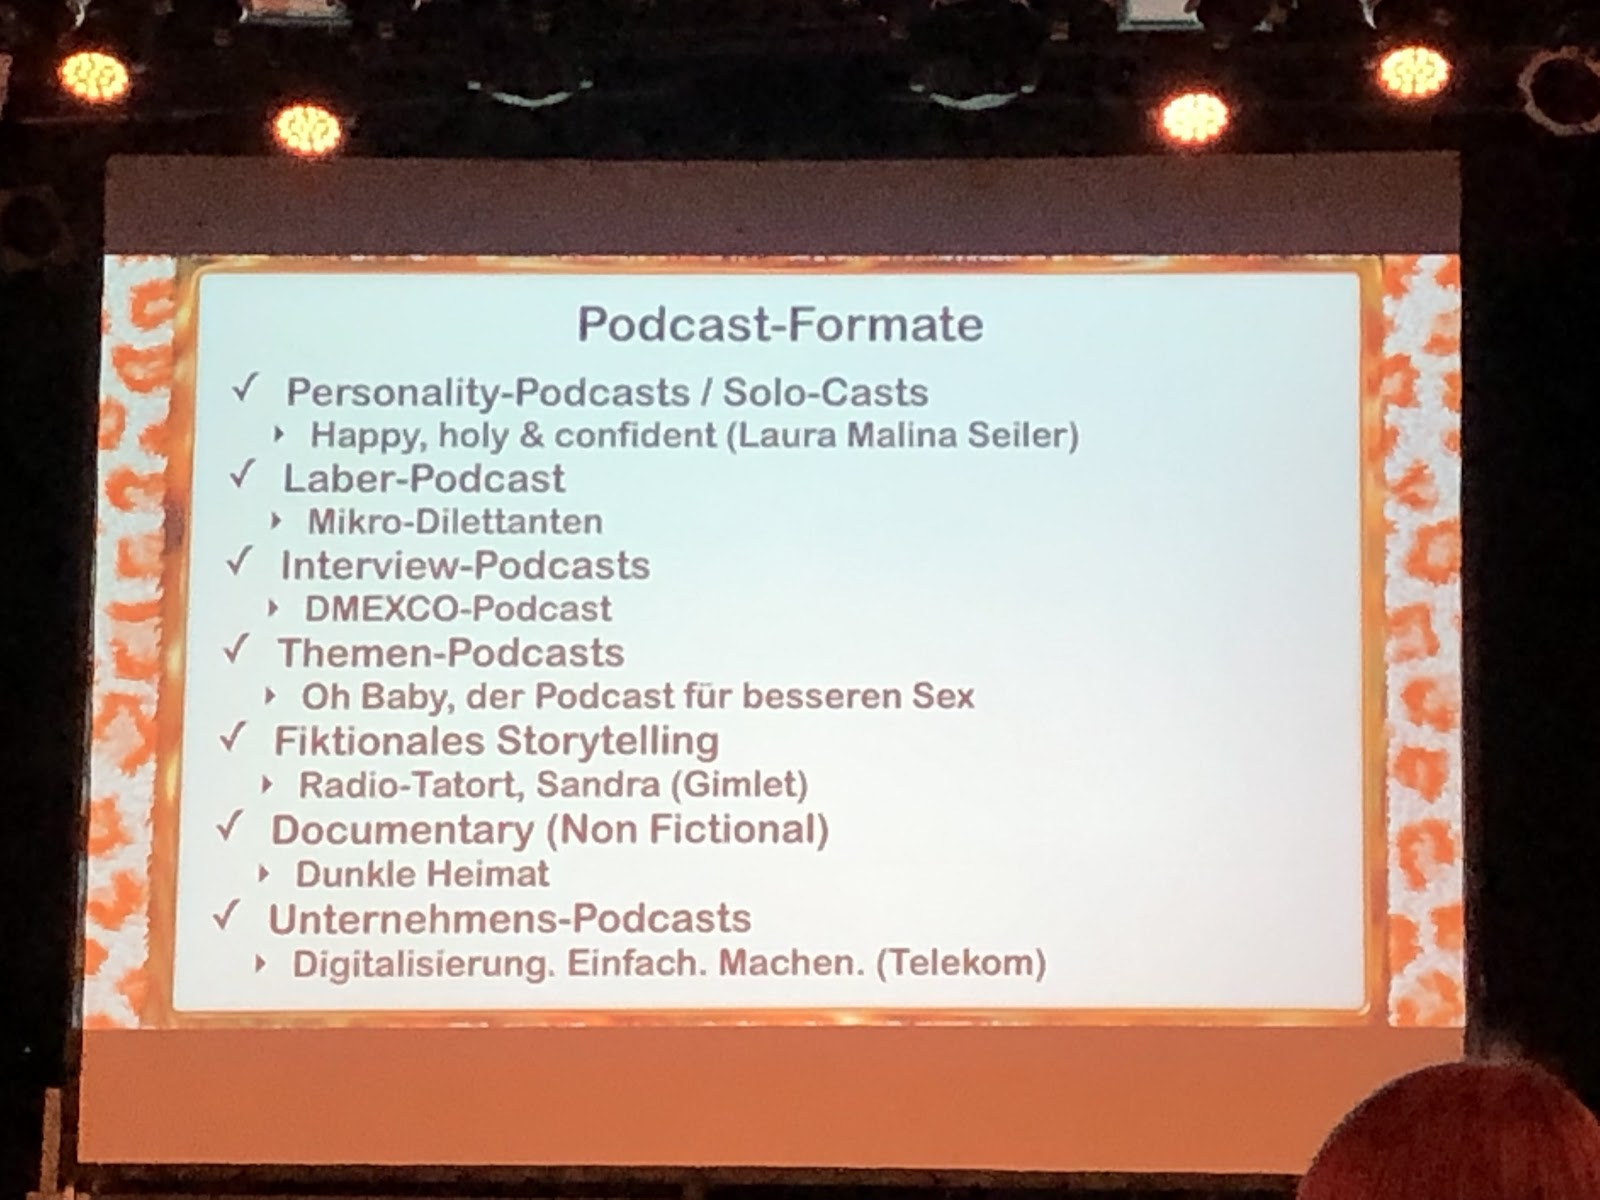 Podcast-Formate